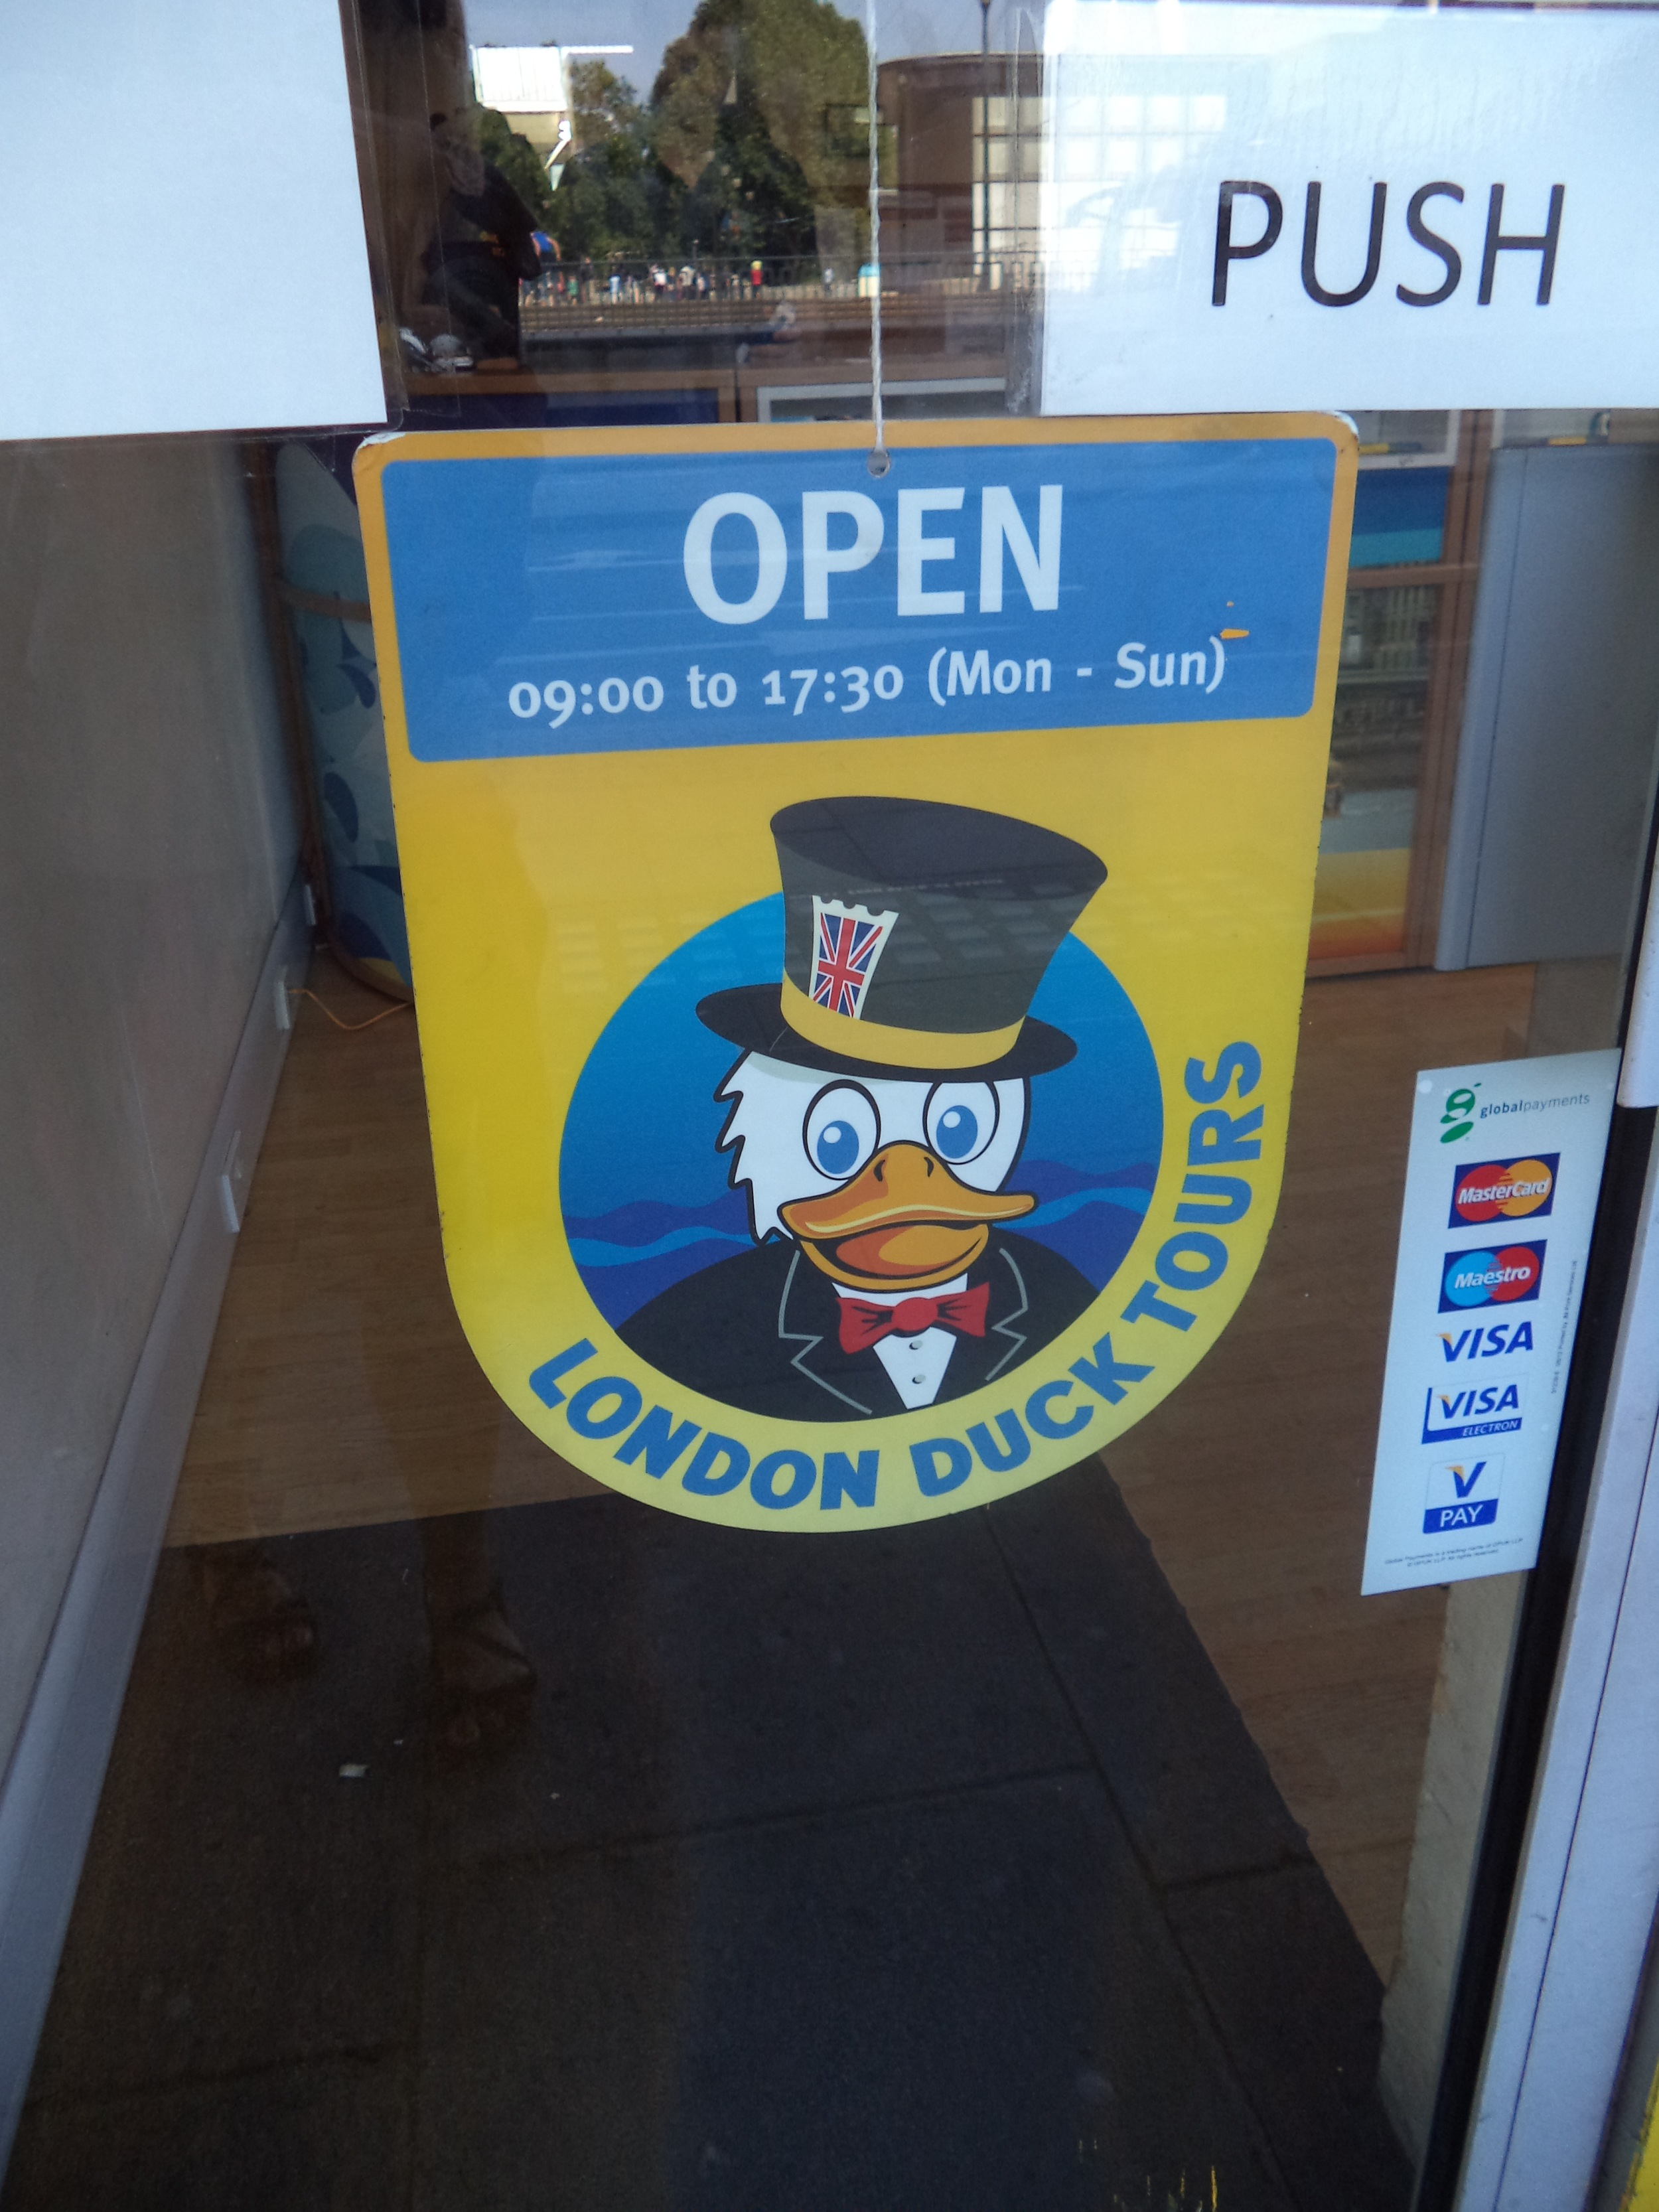 The London Duck Tour office.